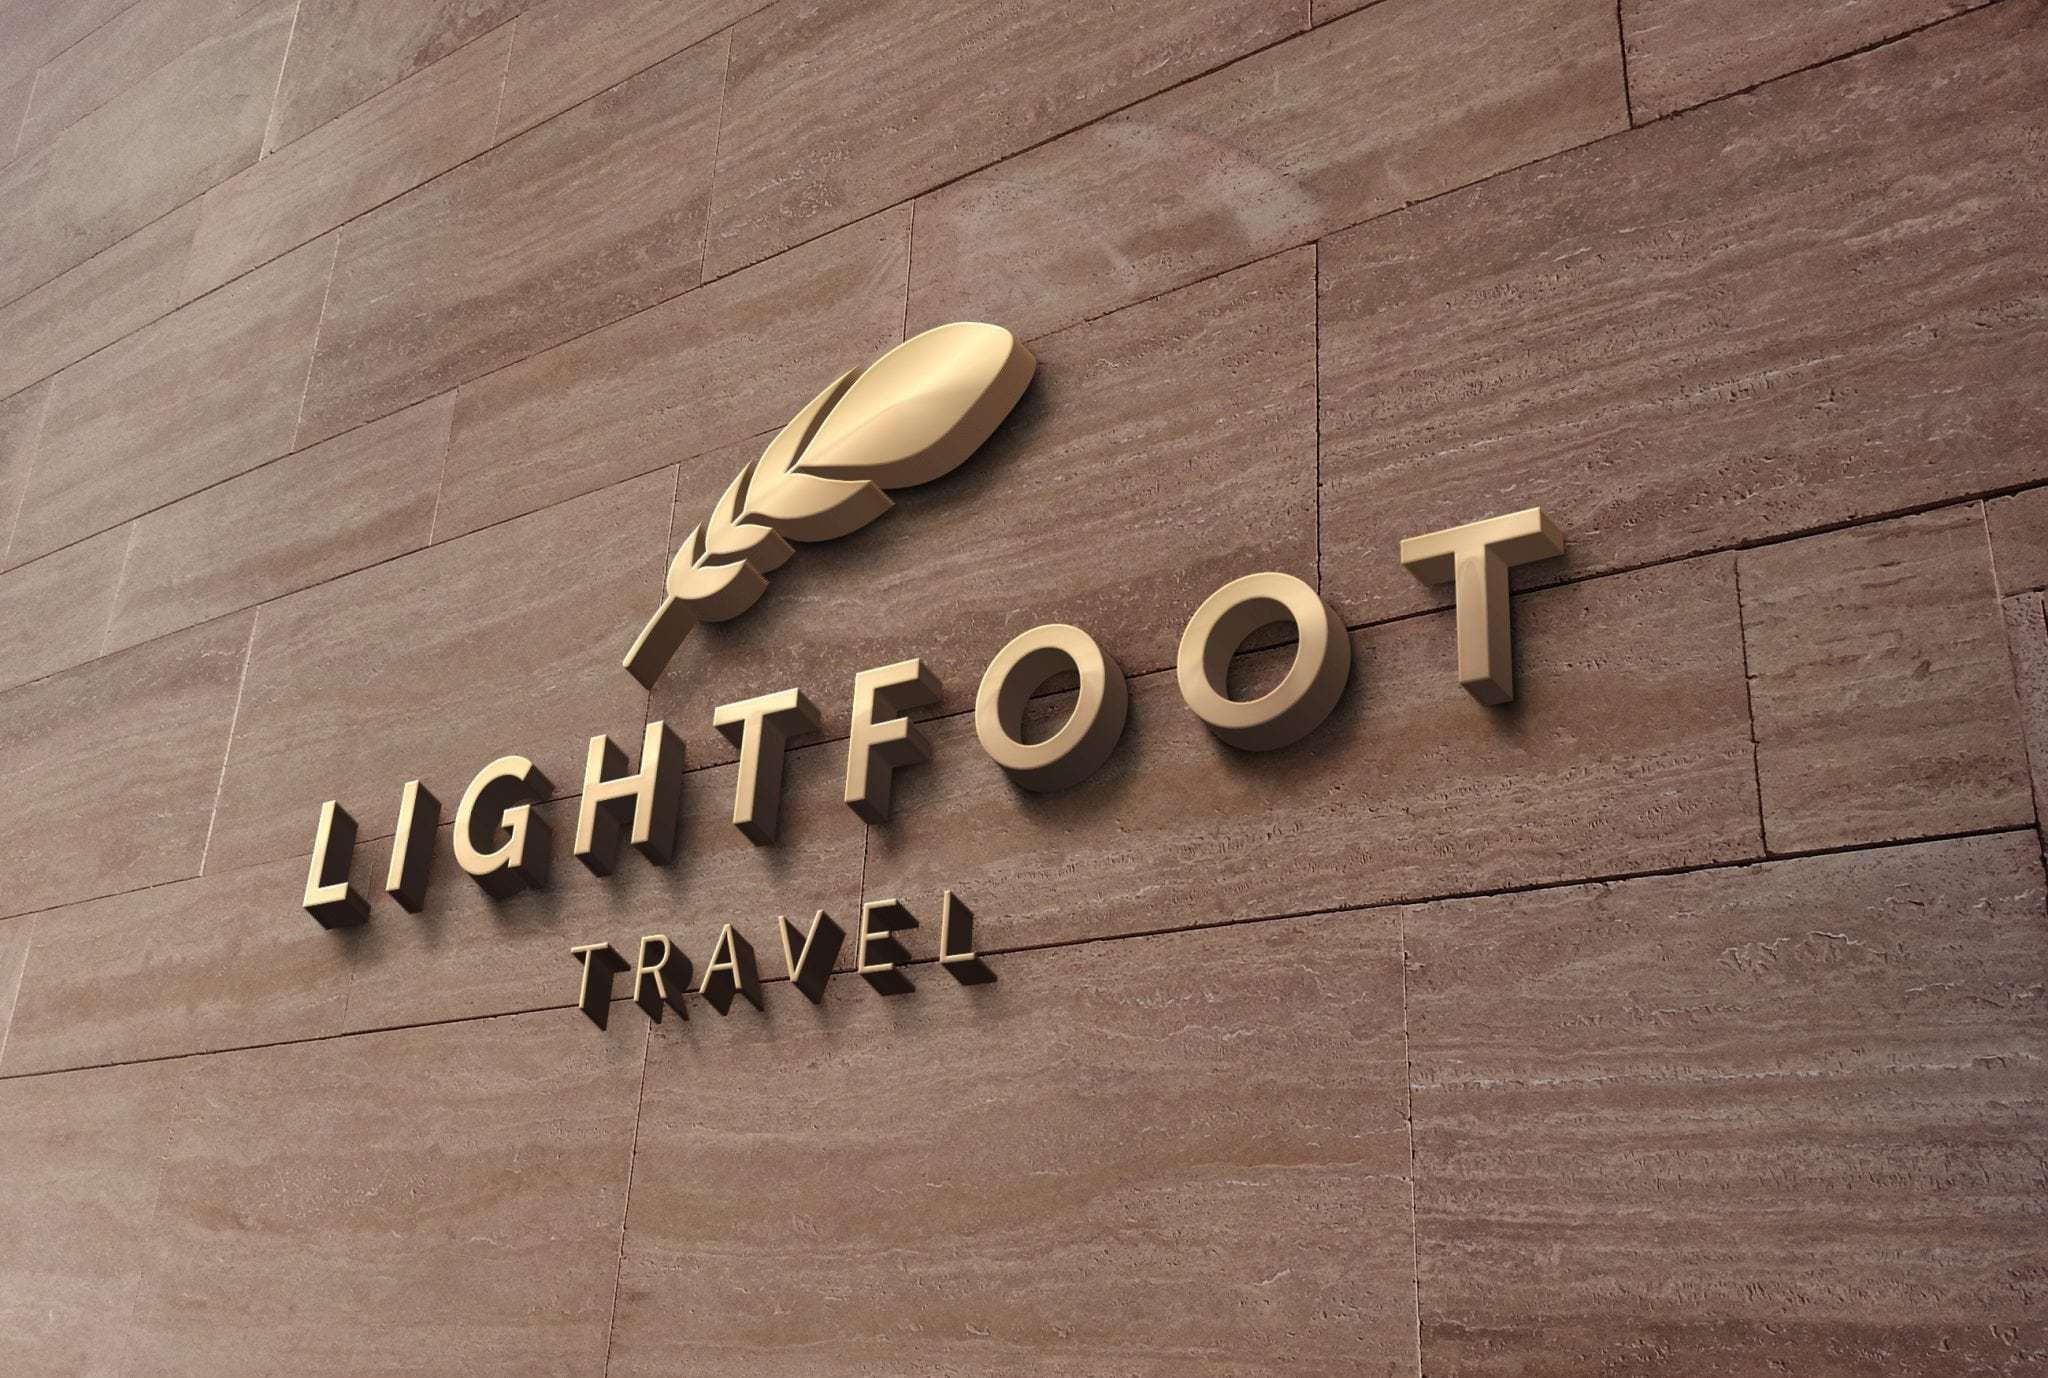 Sugati Travel CRM client - lightfoot travel logo